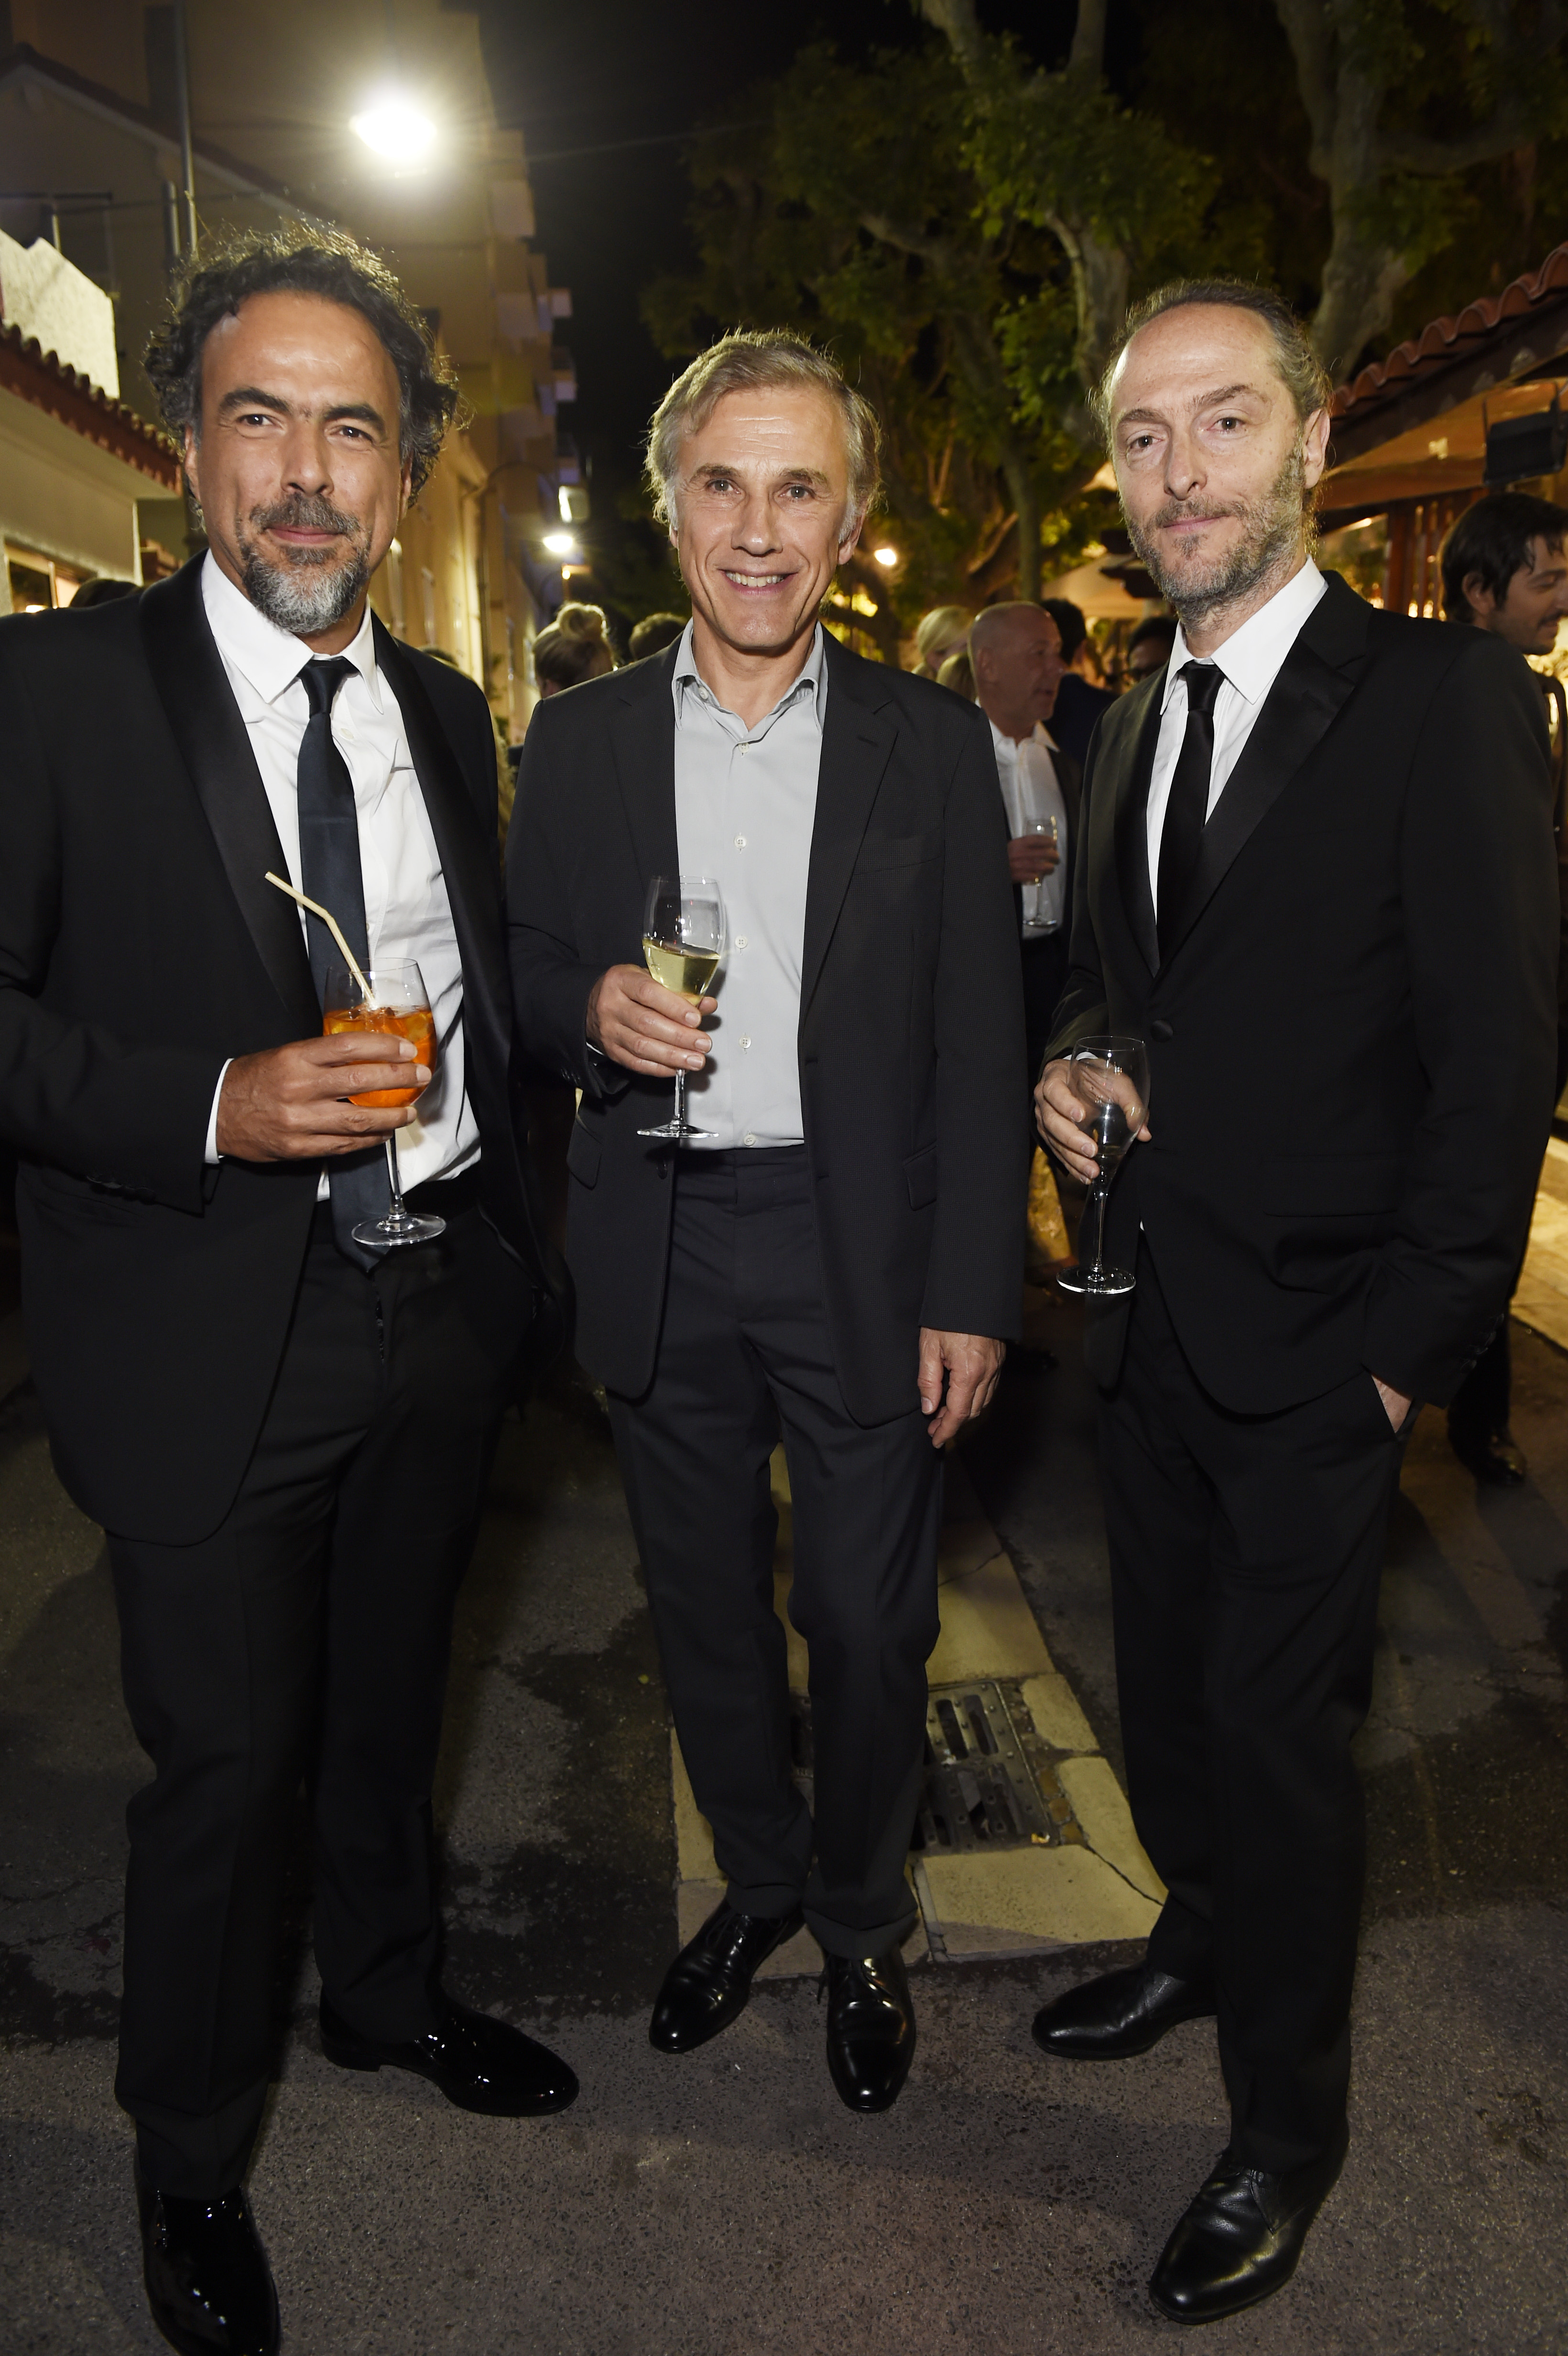 CANNES, FRANCE - MAY 22:  Alejandro Gonzalez Inarritu, Christoph Waltz and Emmanuel Lubezki attend Prada Private Dinner during the 70th annual Cannes Film Festival at Restaurant Fred L'Ecailler on May 22, 2017 in Cannes, France.  (Photo by Antony Jones/Getty Images for Prada)